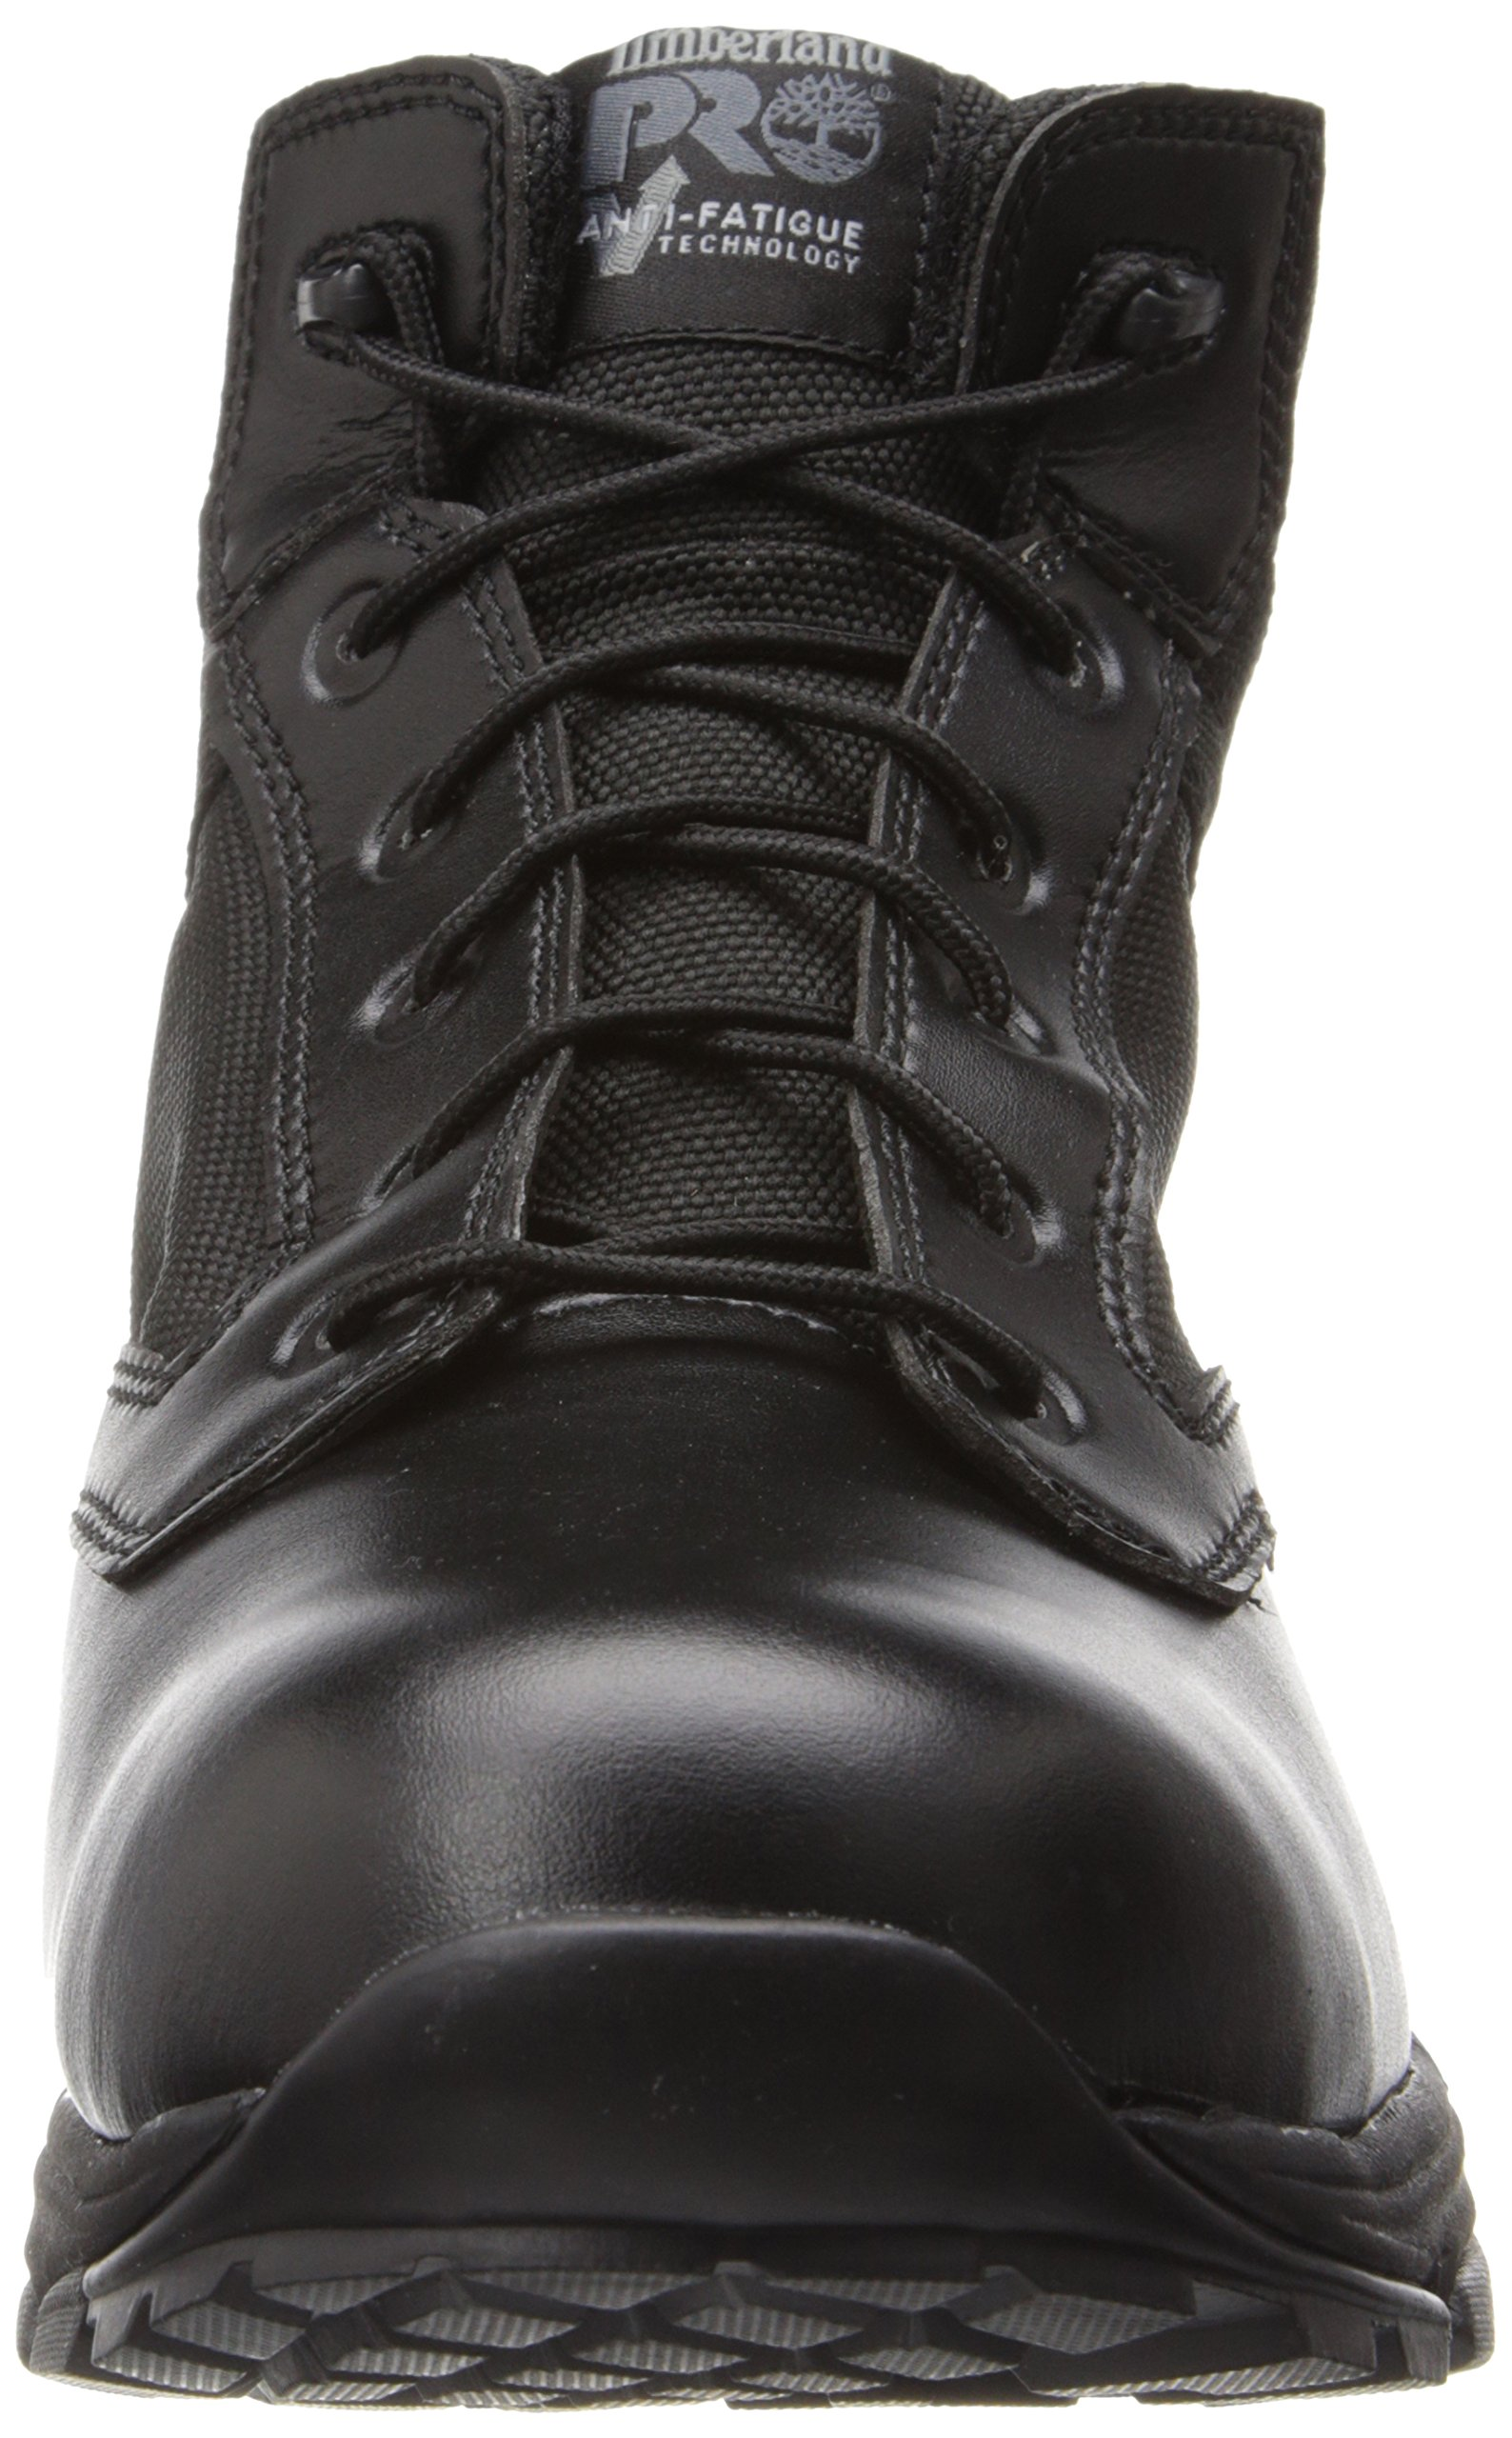 Timberland PRO Men's 5 Inch Valor Soft Toe Waterproof Duty Boot,Black Smooth With Textile,11.5 M US by Timberland PRO (Image #4)